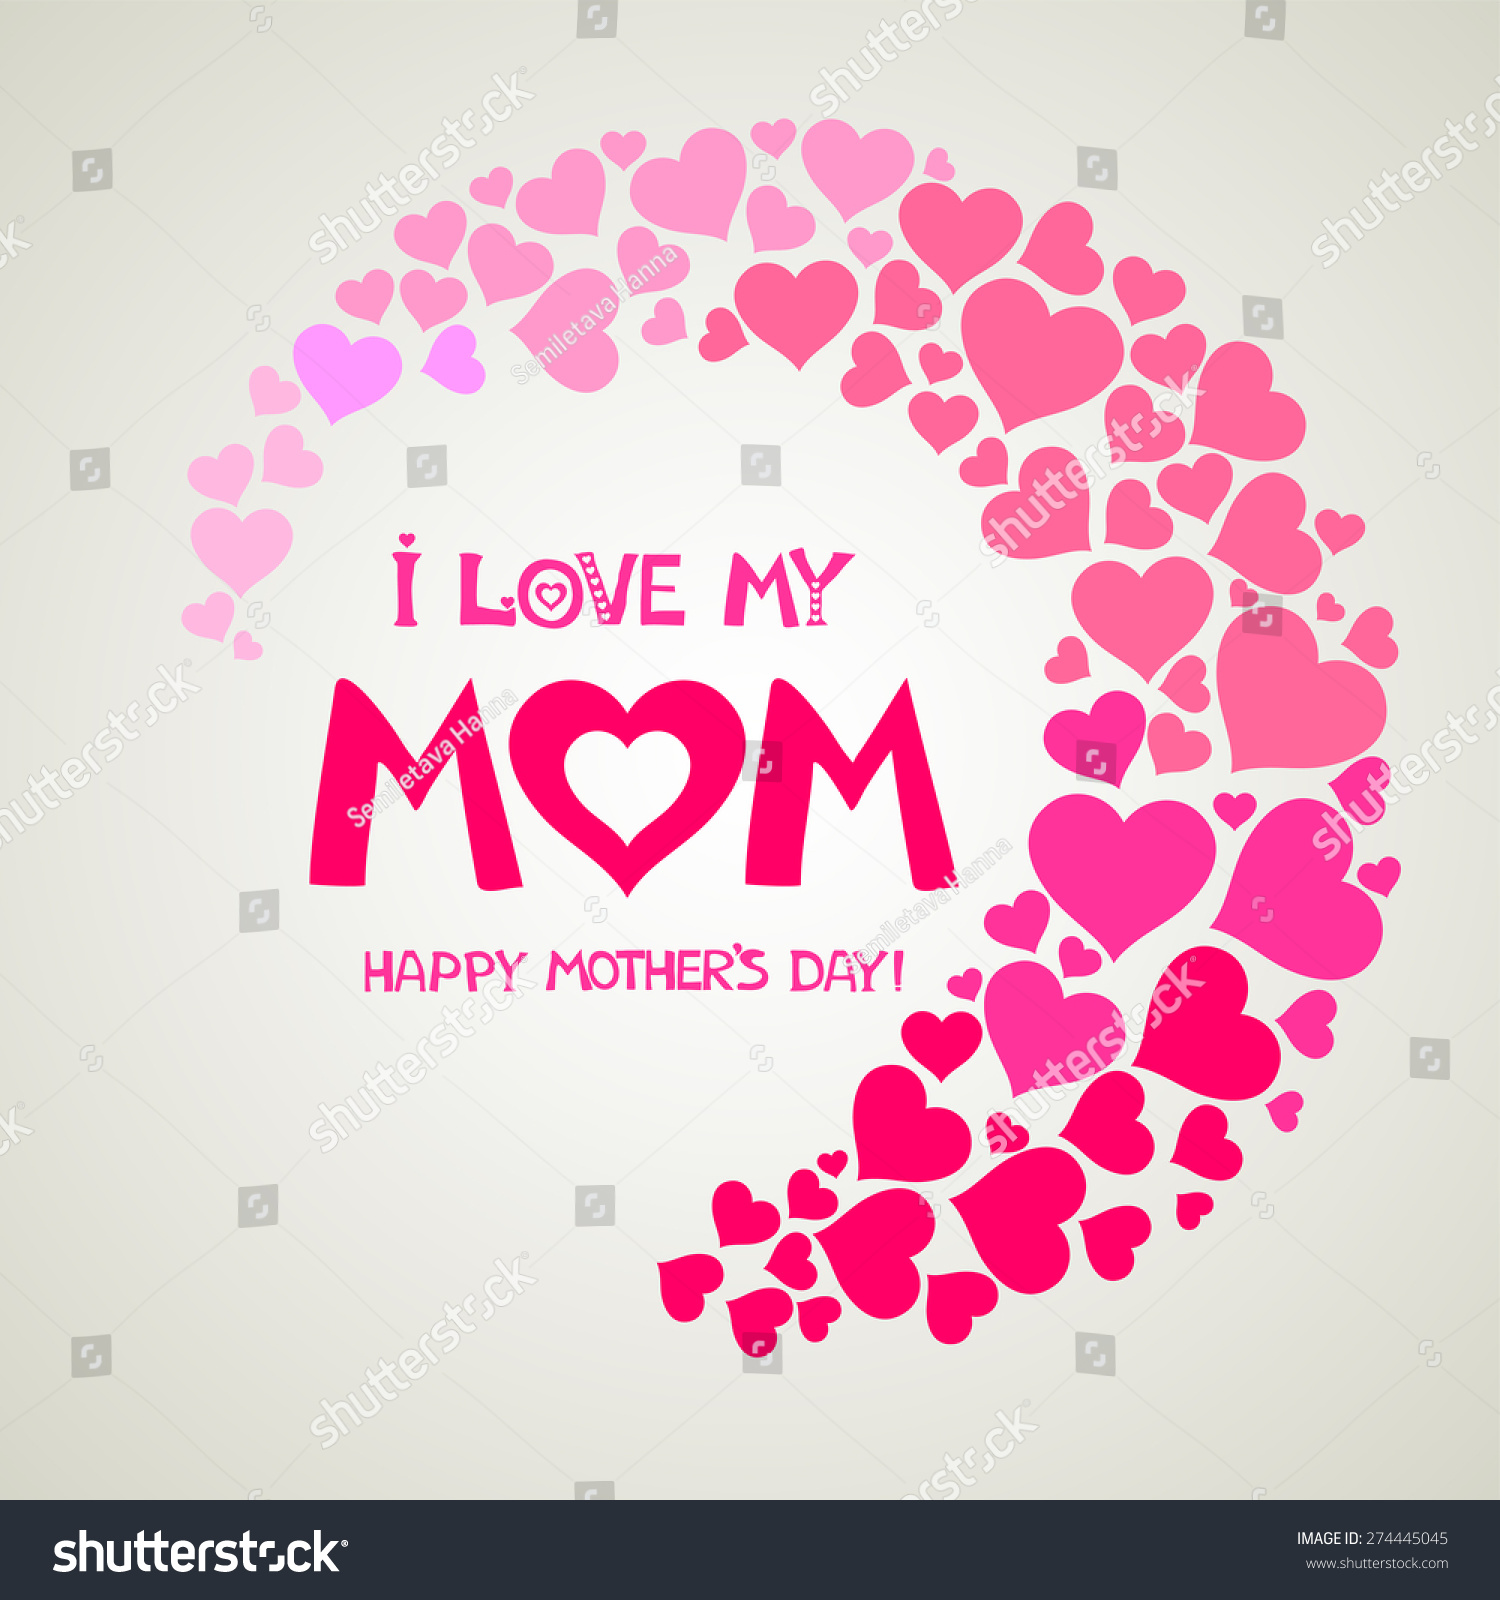 Love My Mom. Happy Mothers Day Card. Vector Illustration - 274445045 ...